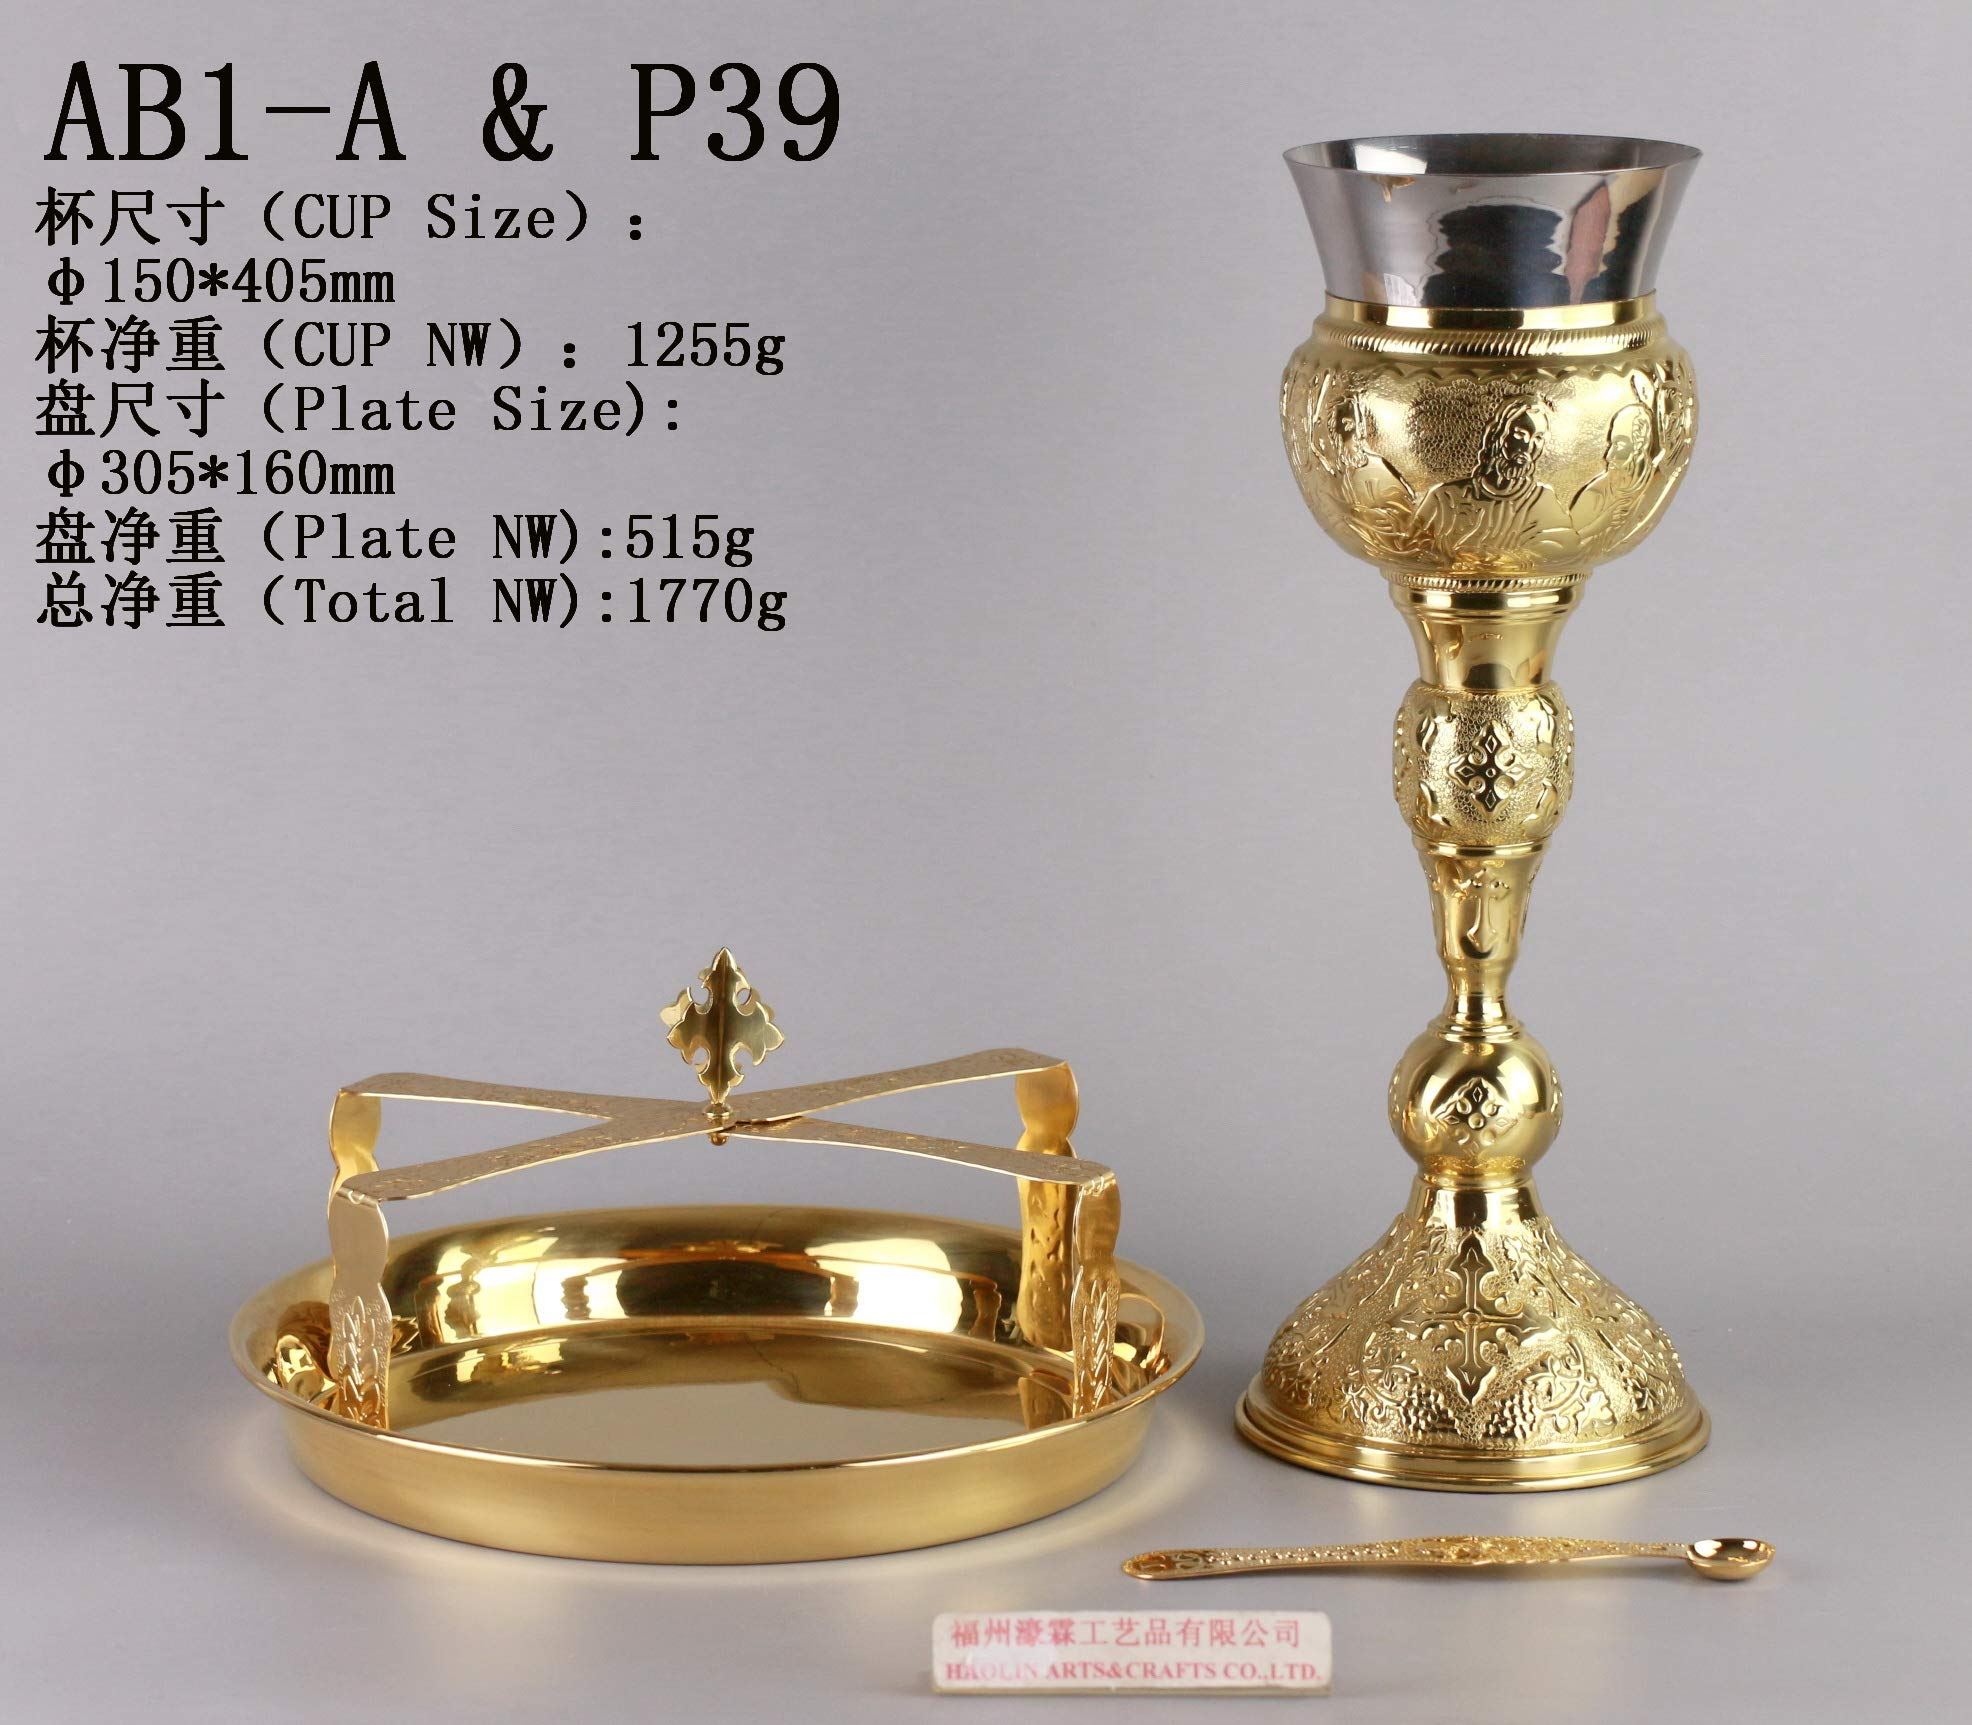 Brass Plate Altar Religion AB1-A & P39 Our Company Have 101 Kinds of Chalice and Plate for Your Choice.